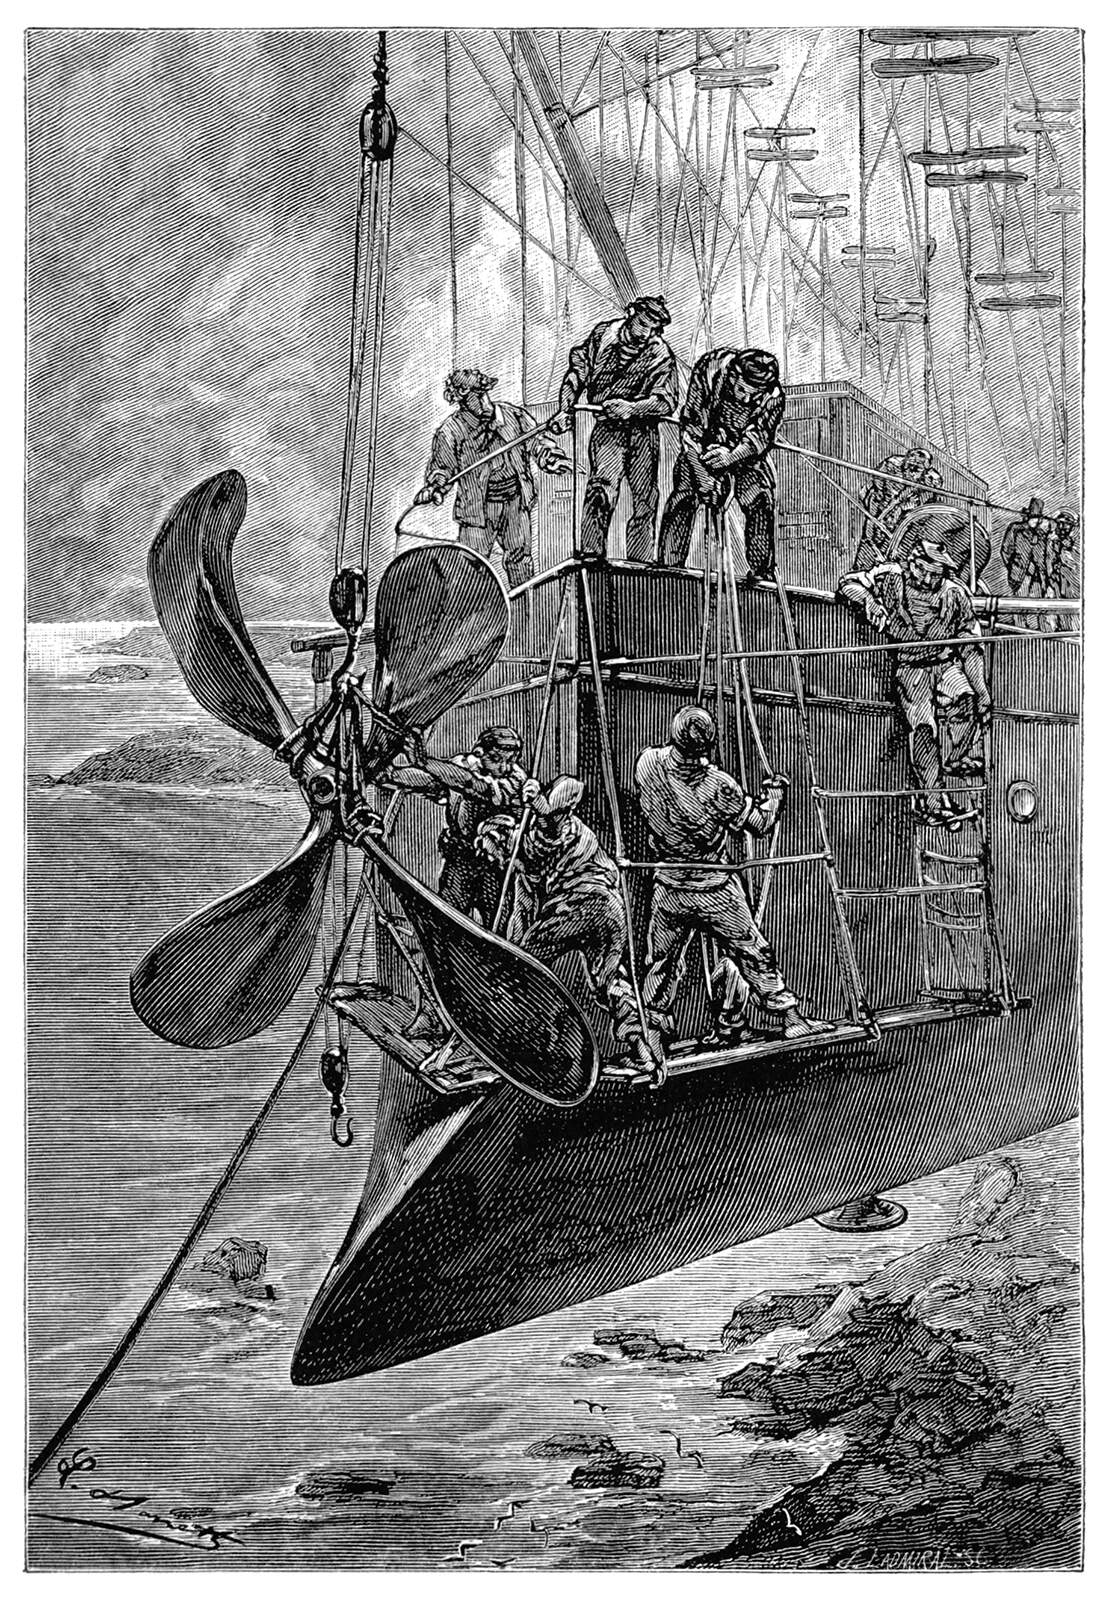 Name: Benett, Léon Dates: 1839-1917 Country: France ILLUSTRATION Subject: Science & technology Technique: Wood engraving Engraver: Ladmiral, Jules, Marie, René Format: Portrait (taller) Source: University of California Libraries, the Internet Archive BOOK Title: The clipper of the clouds Author(s): Verne, Jules Publisher: London: Sampson Low, Marston & Company, Limited, 1887